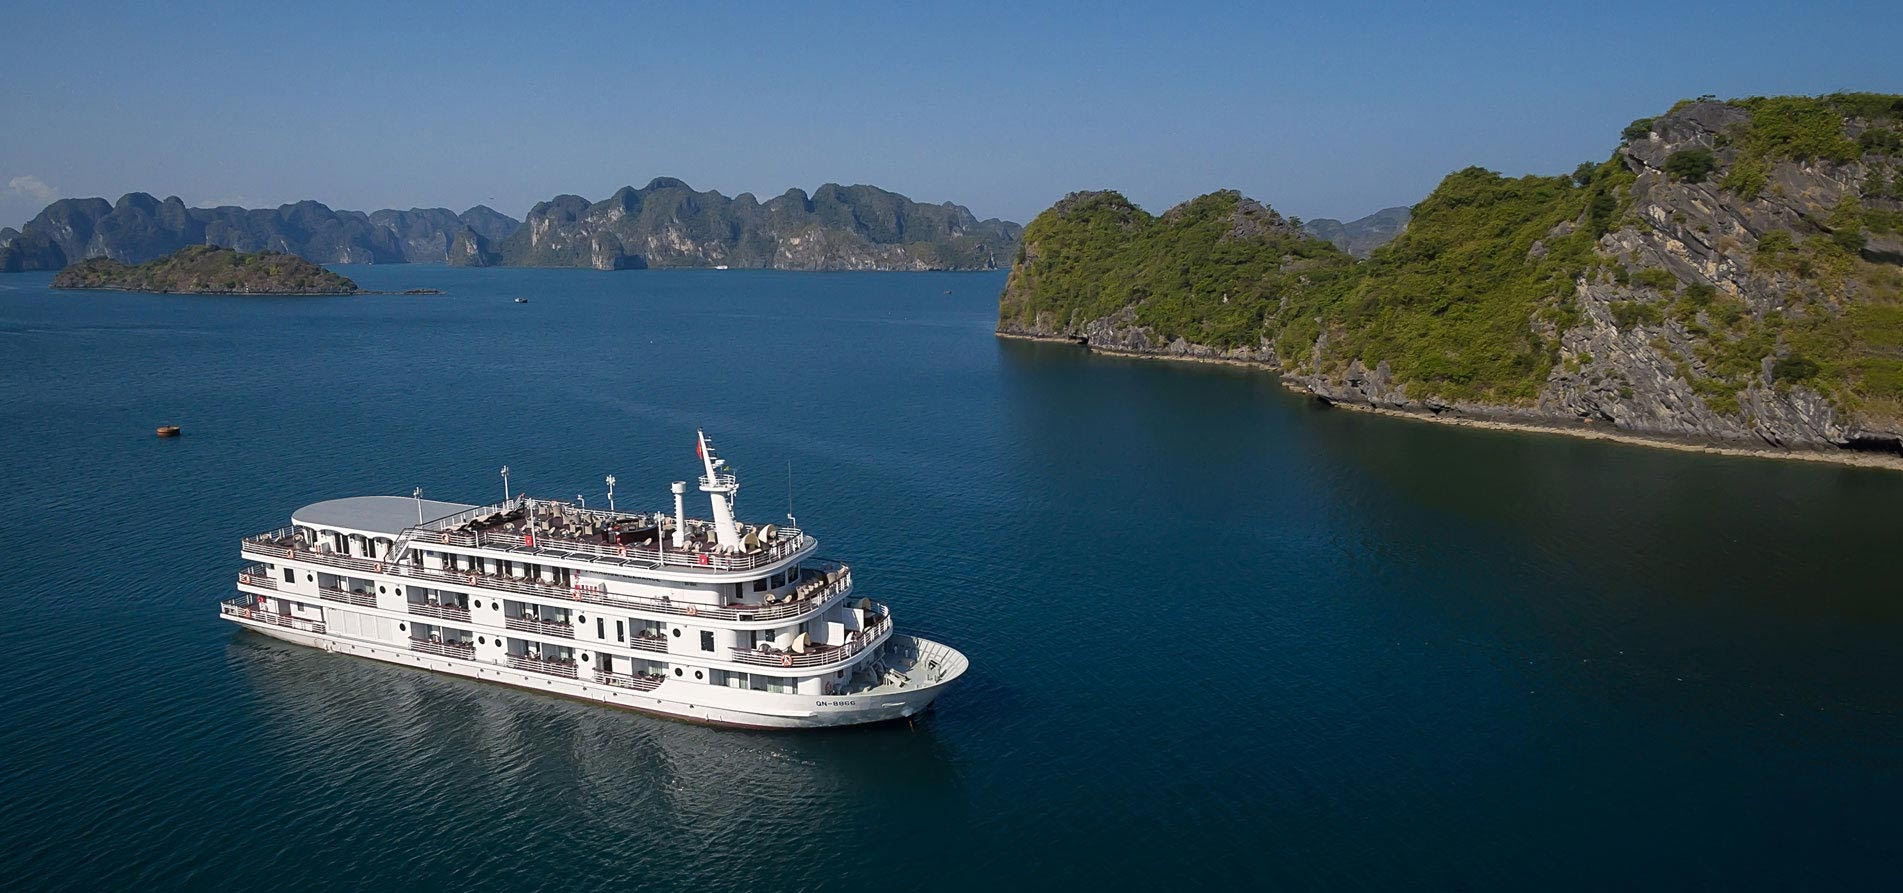 paradise-elegance-cruise-ship-in-halong